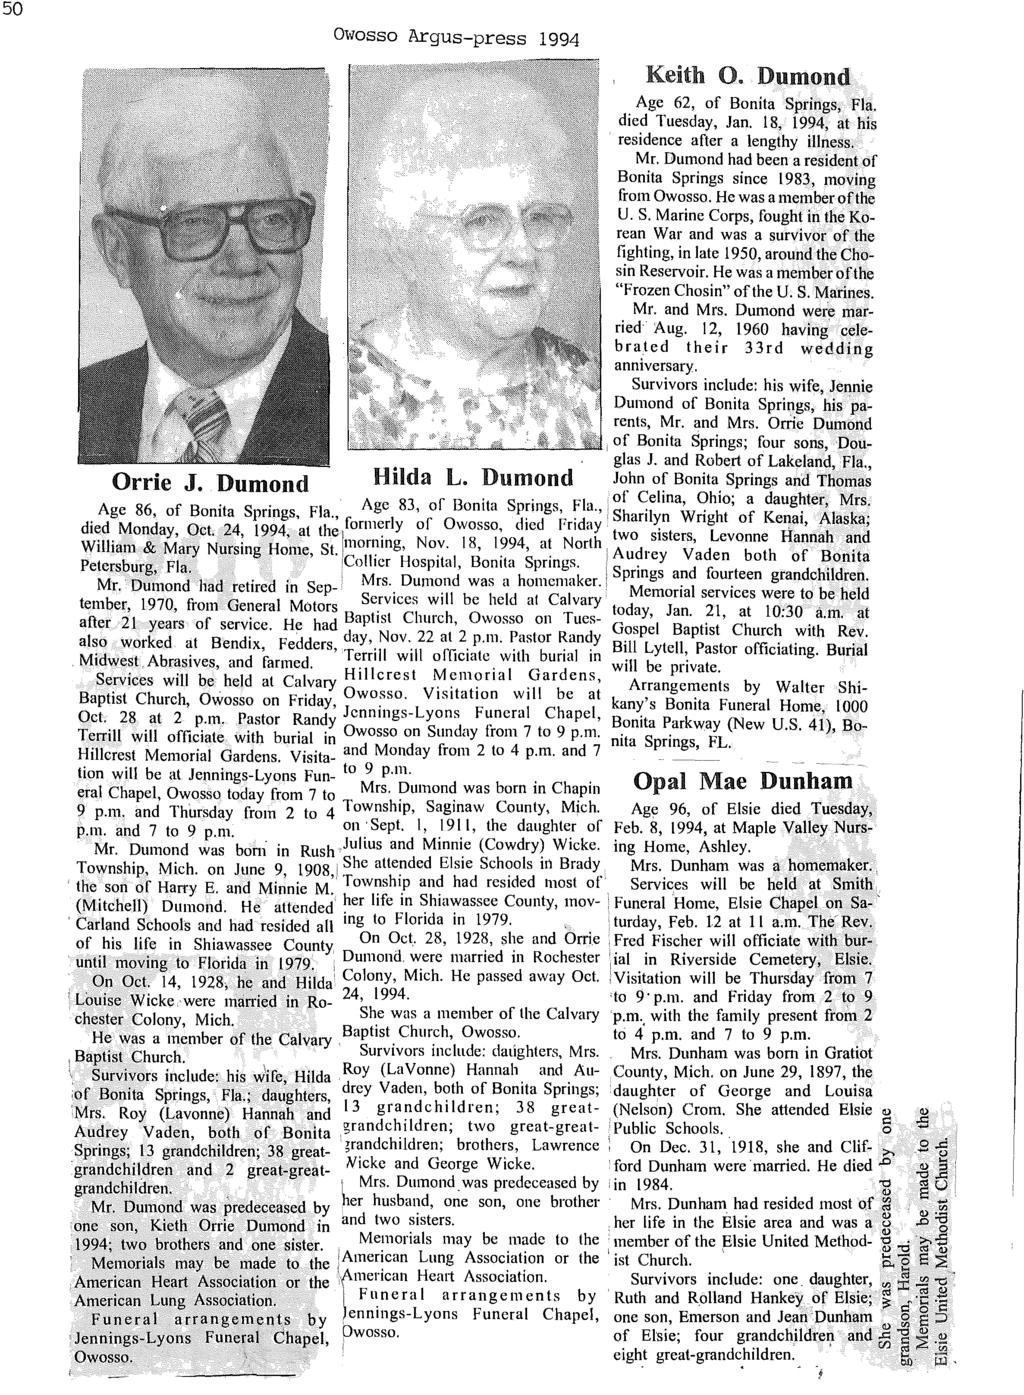 on ('I 50 owosso Argus-press 1994 Keith O. Dumond. Age 62, of Bonita Springs, Fla. died Tuesday, Jan. 18, 1994 at his residence after a lengthy iii~ess. Mr.